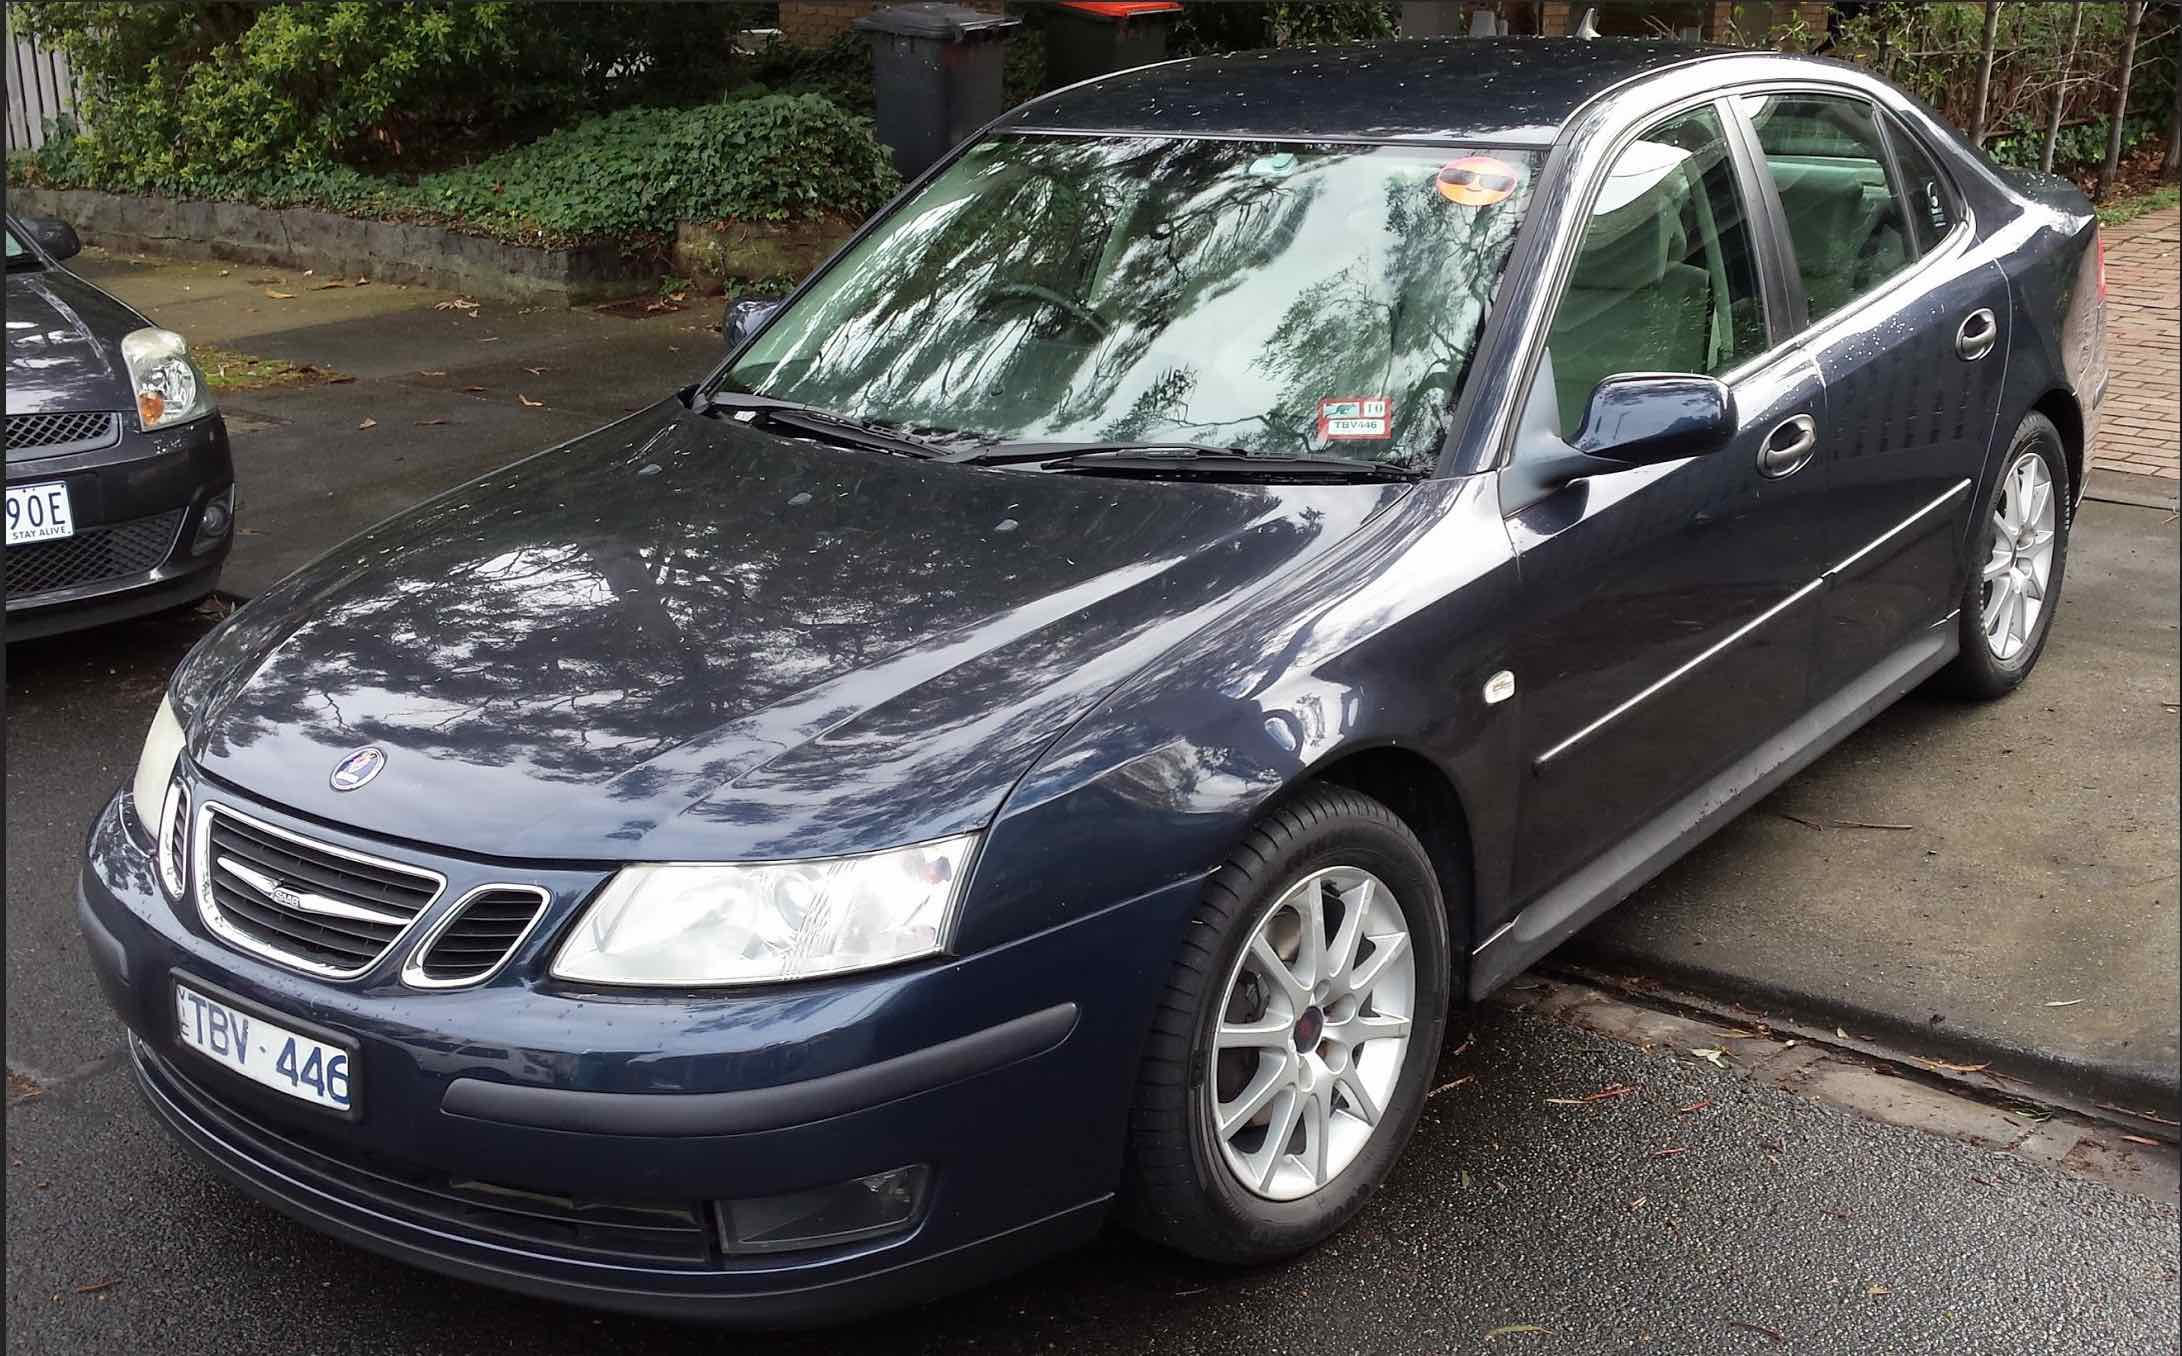 Picture of Denis' 2004 Saab 9-3